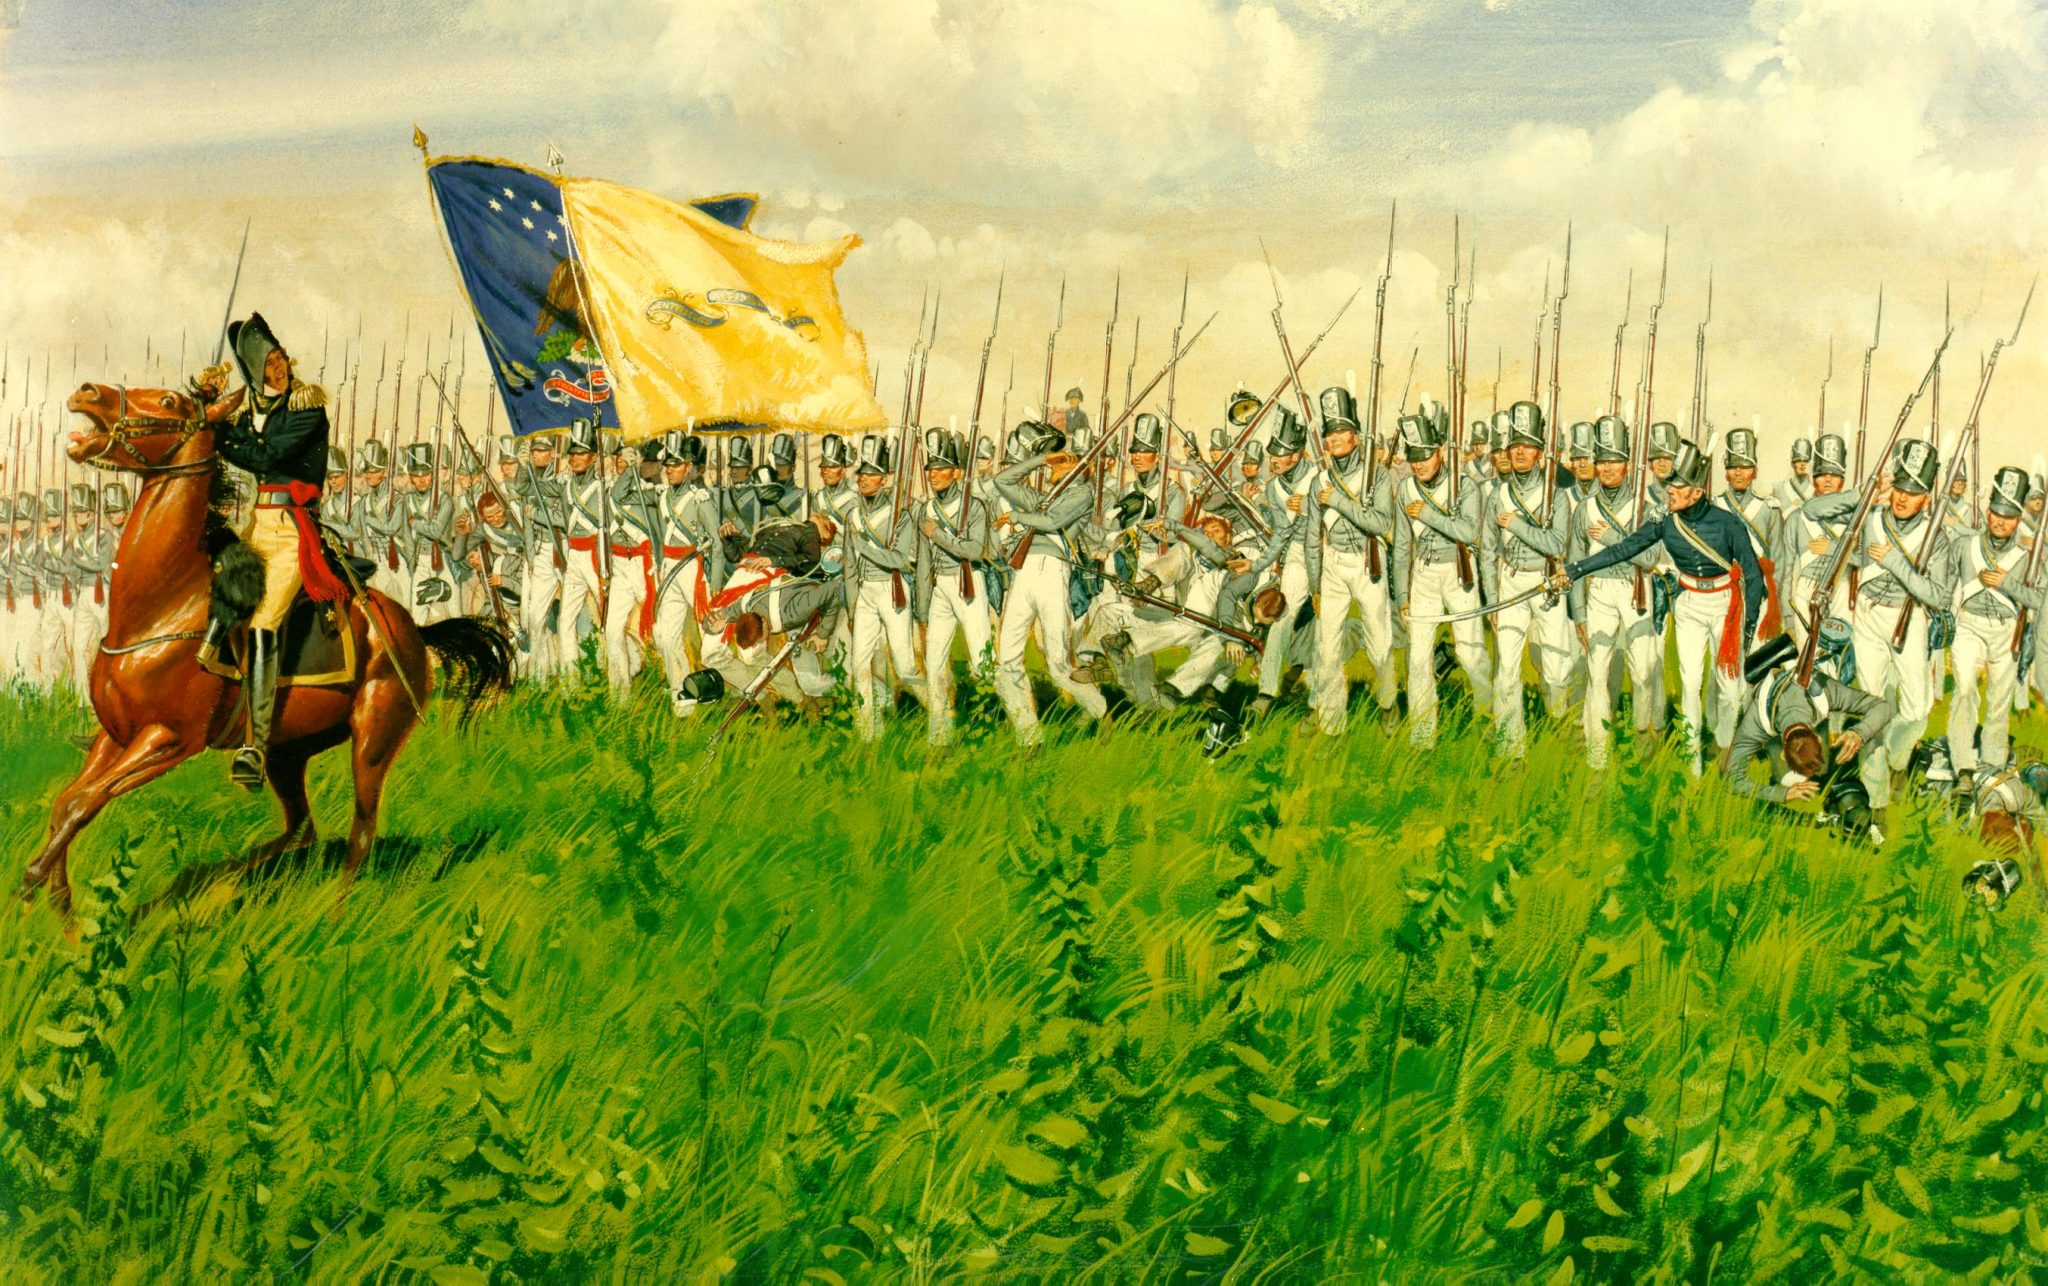 The Battle Of Chippewa 5 July 1814 The Campaign For The National Museum Of The United States Army